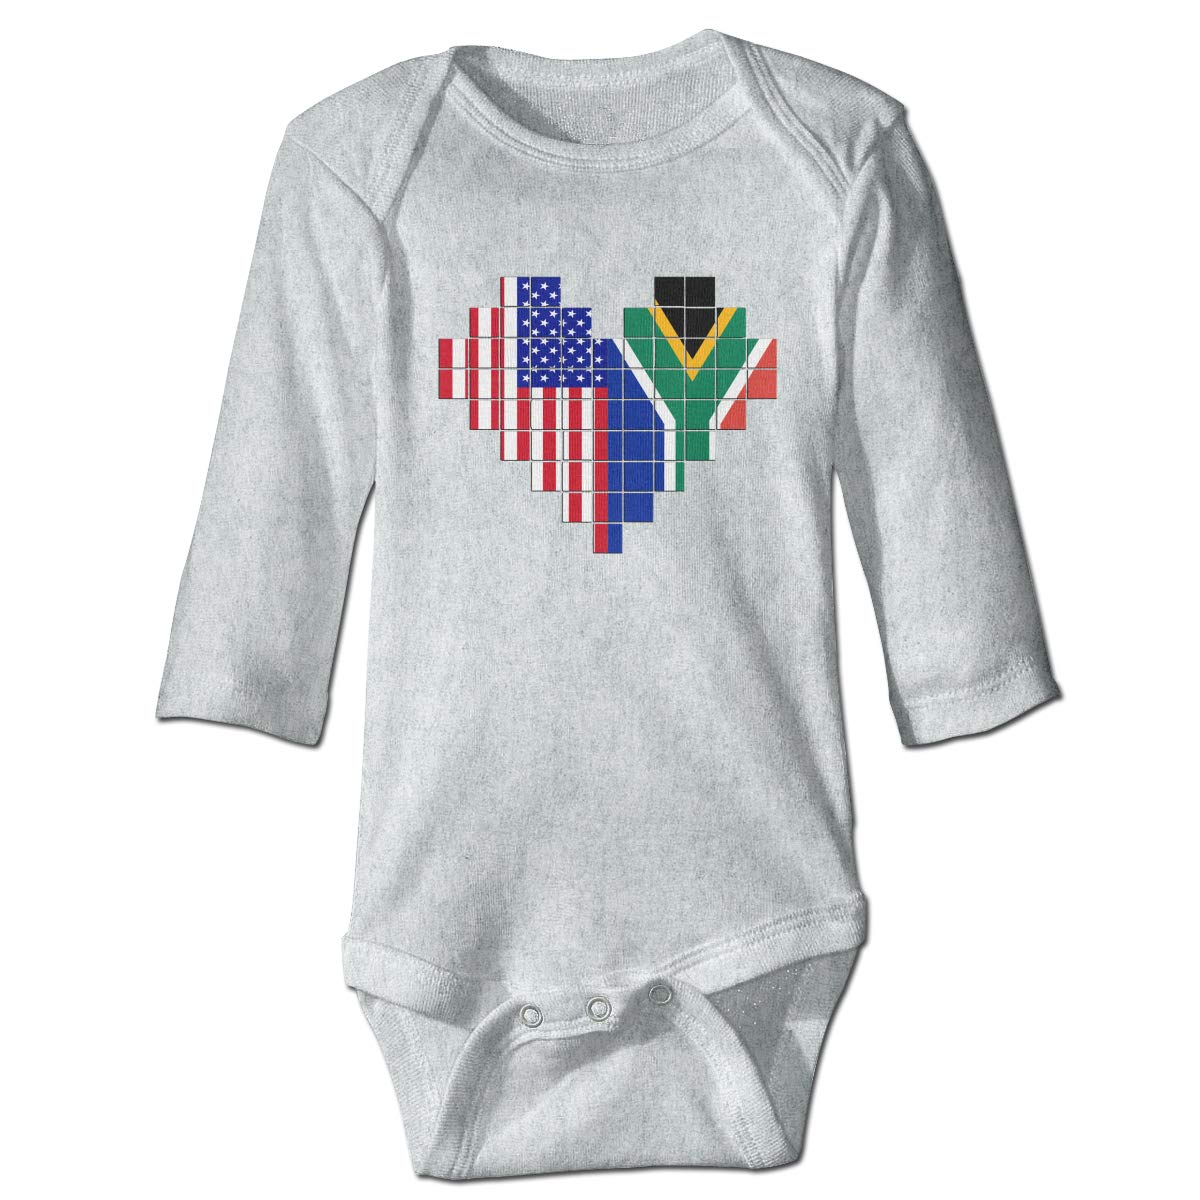 A14UBP Infant Baby Boys Girls Long Sleeve Climb Romper American Flag South African Flag Puzzle Heart Playsuit Outfit Clothes